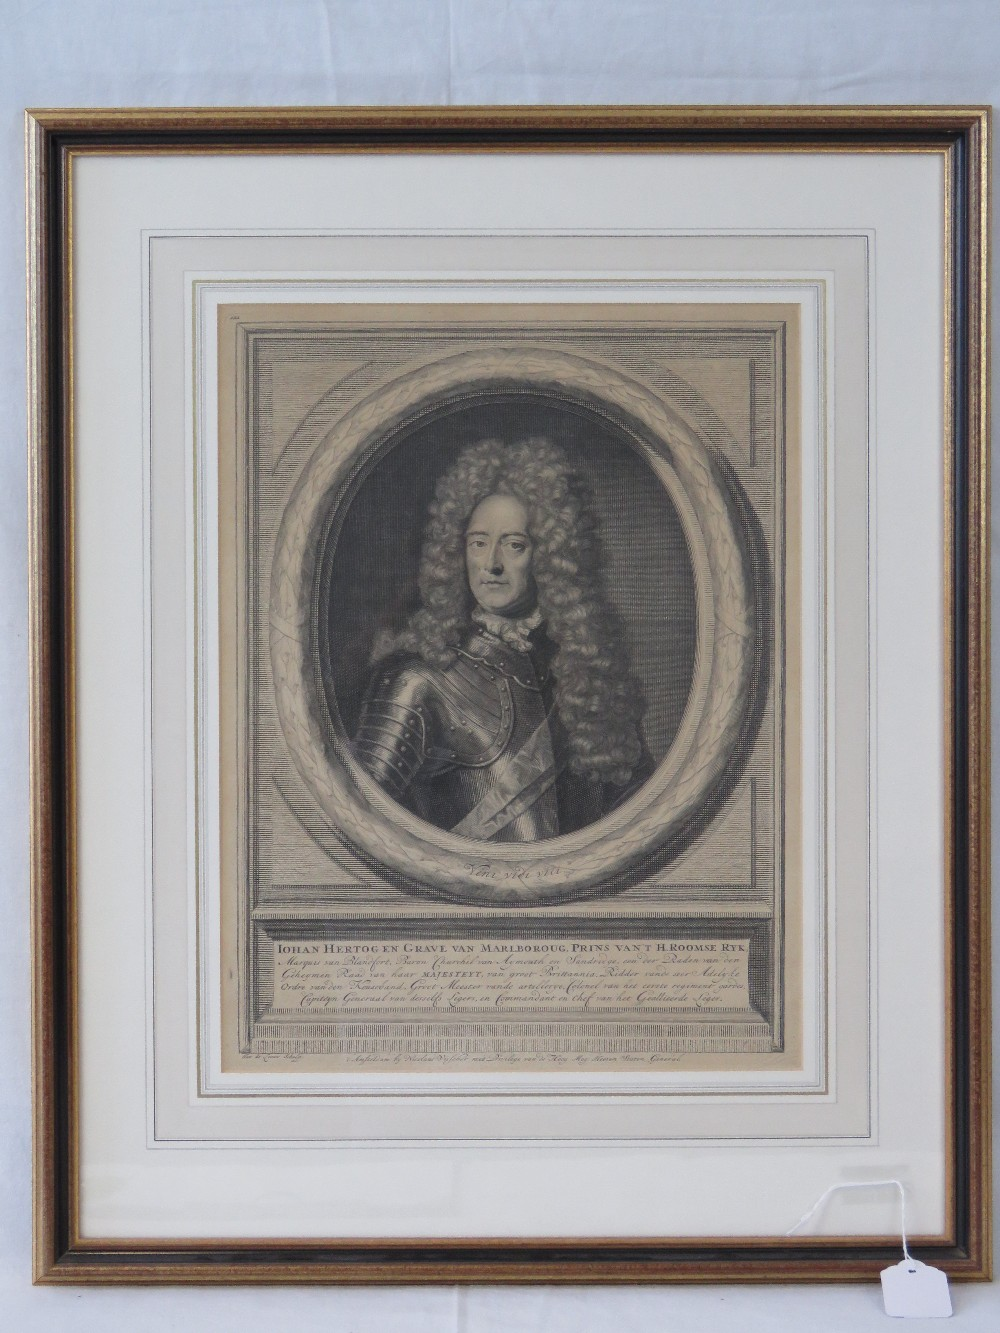 Lot 811 - A steel engraving depicting the Duke of